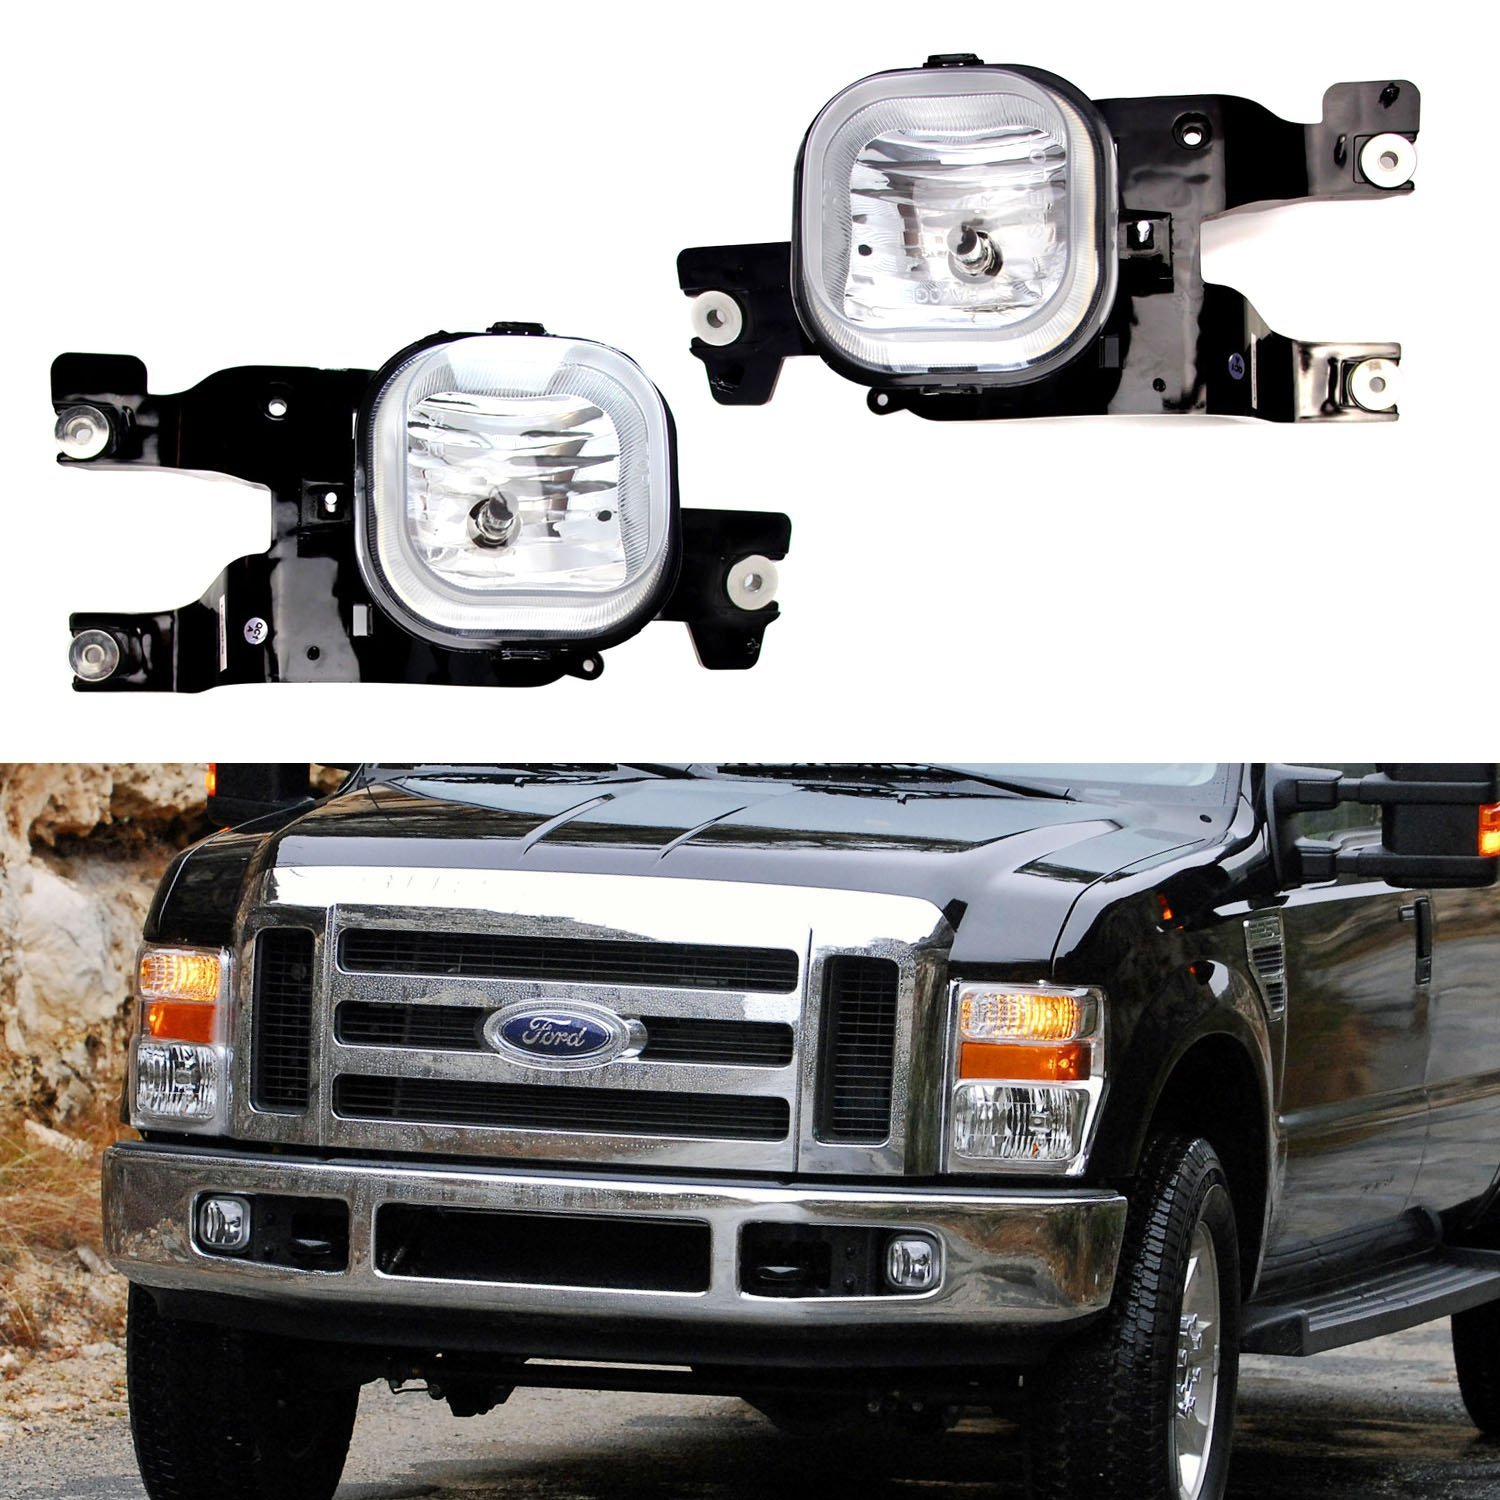 2008 F350 Fog Light Wiring Diagram Diagrams Ijdmtoy Complete Set Lights Foglamp Kit With Halogen Door Schematics